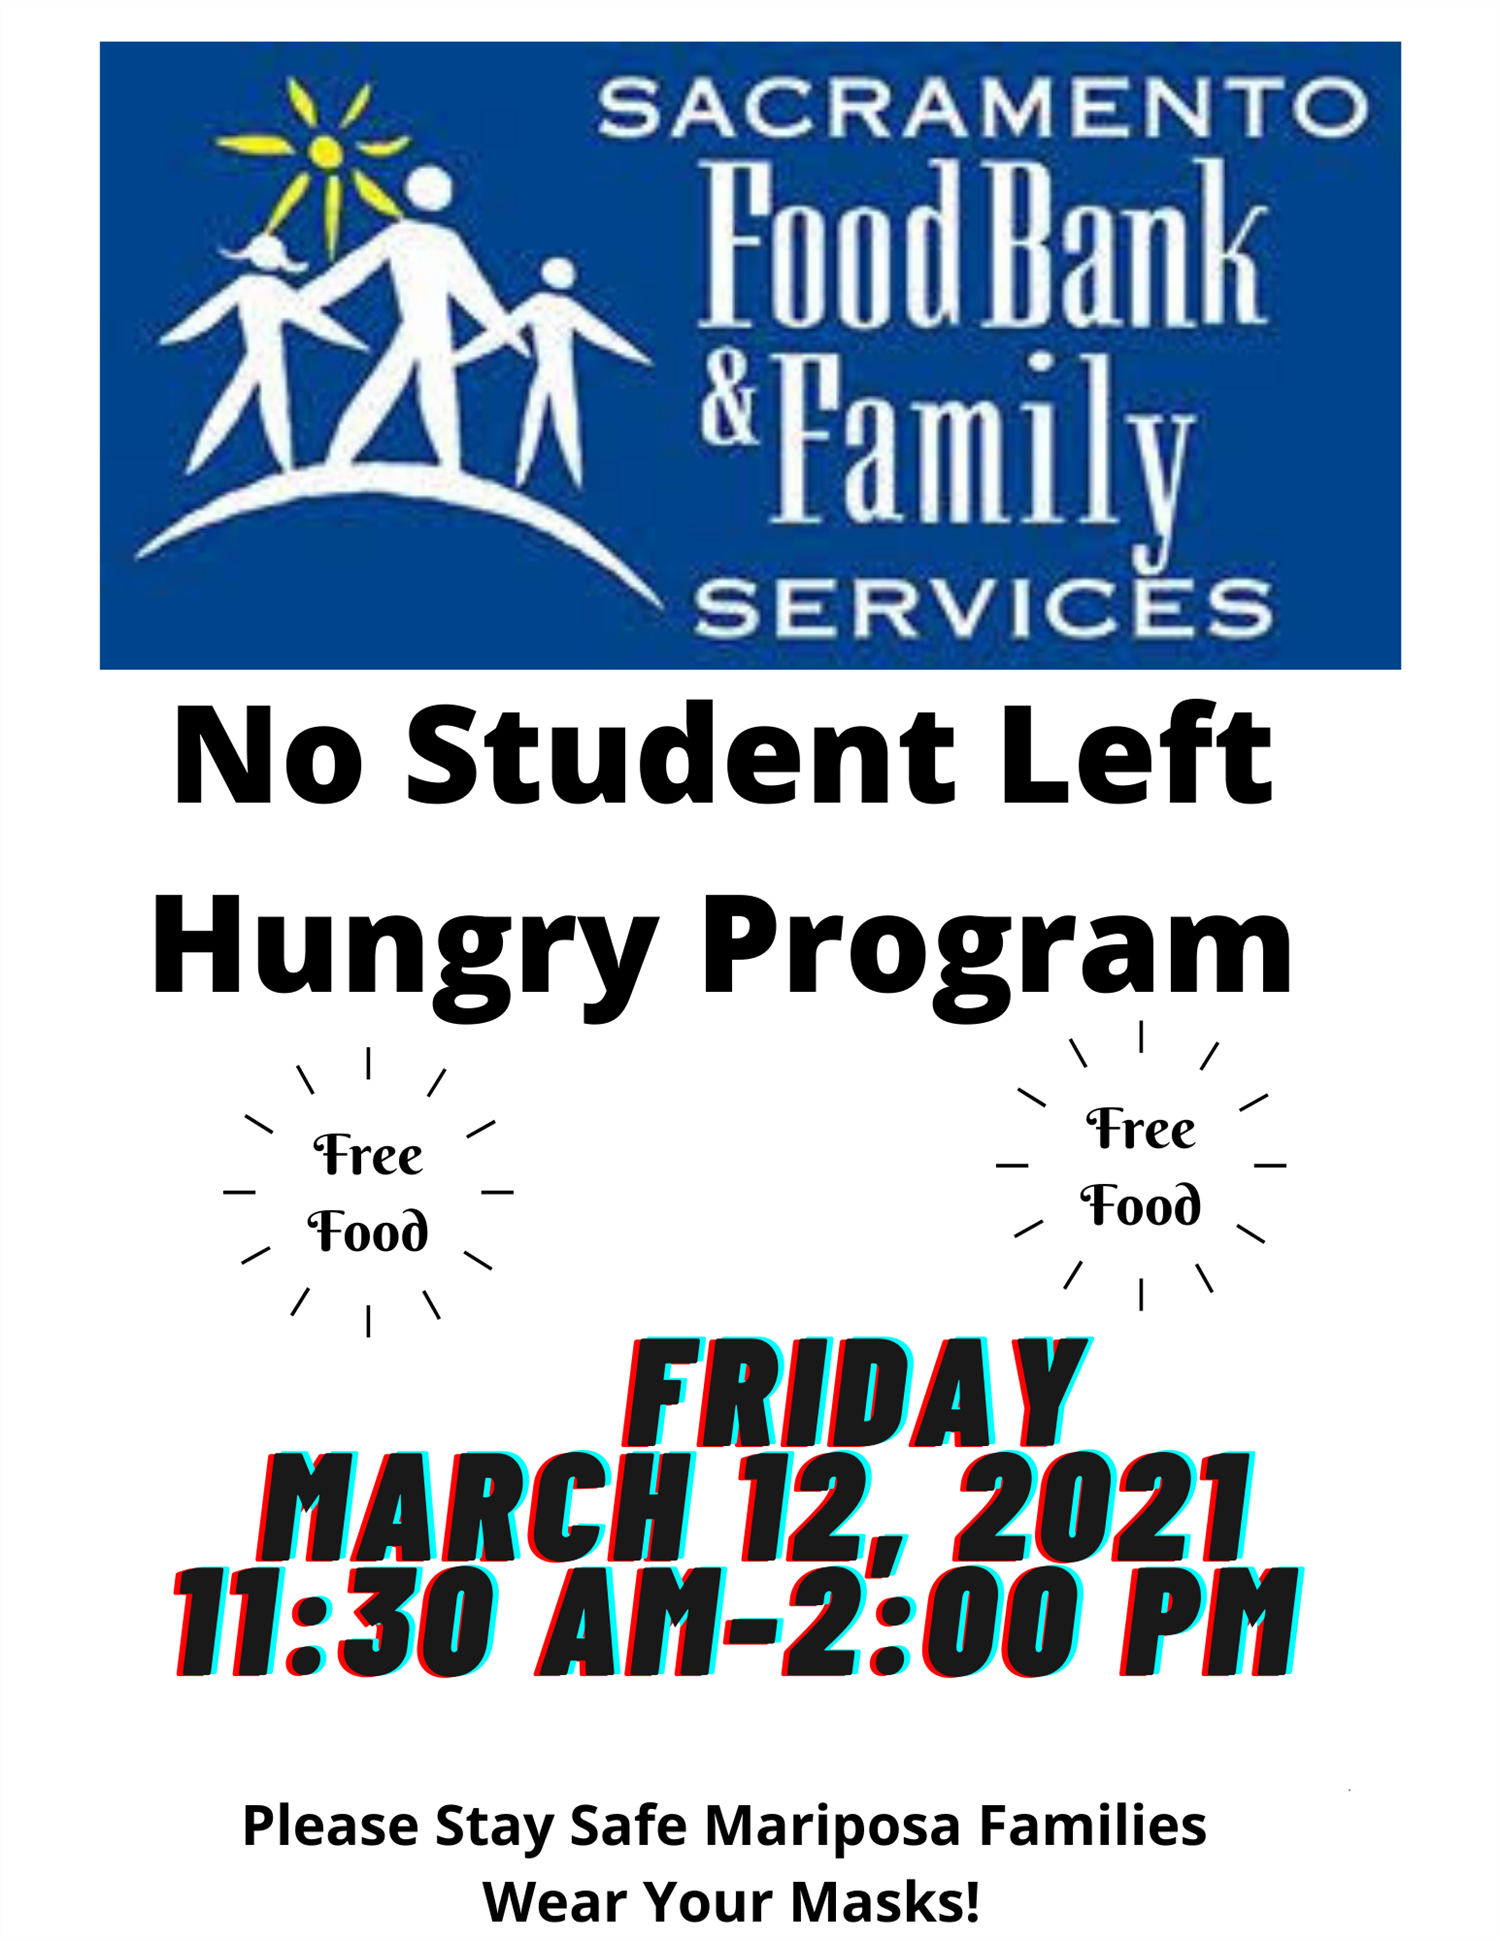 No Student Left Hungry Food Program March 12, 2021